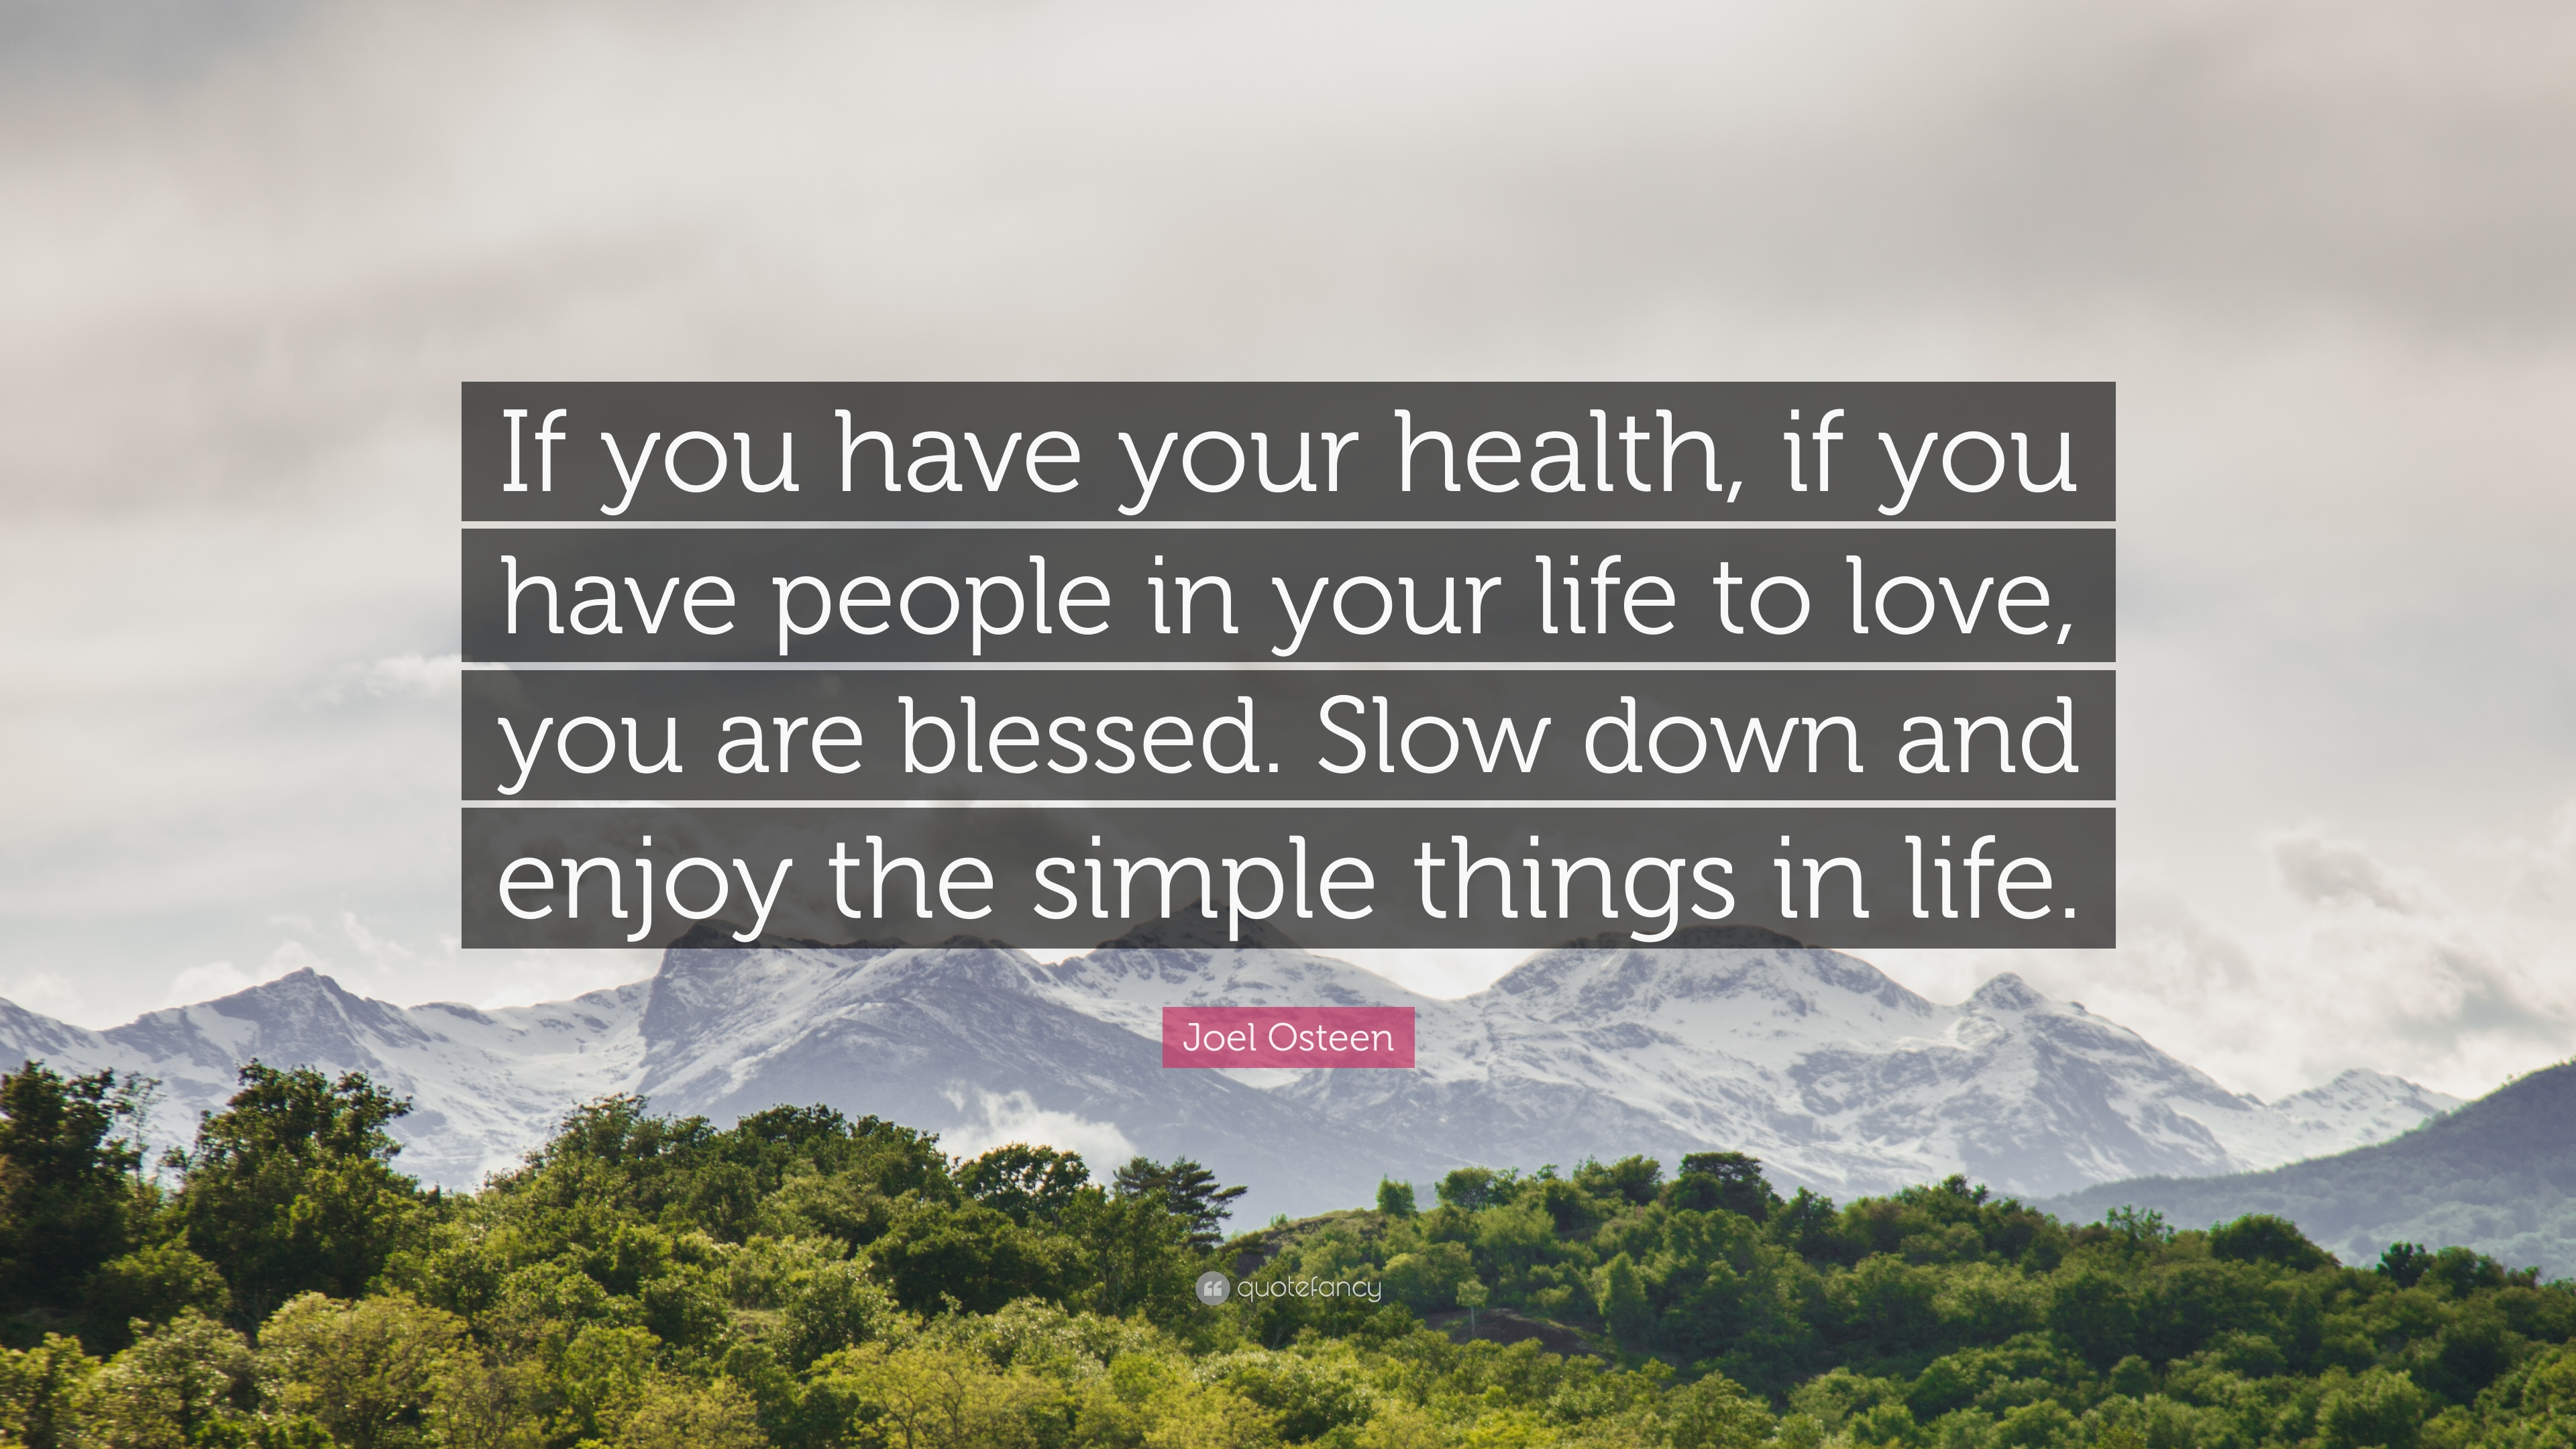 Joel Osteen Quote If You Have Your Health If You Have People In